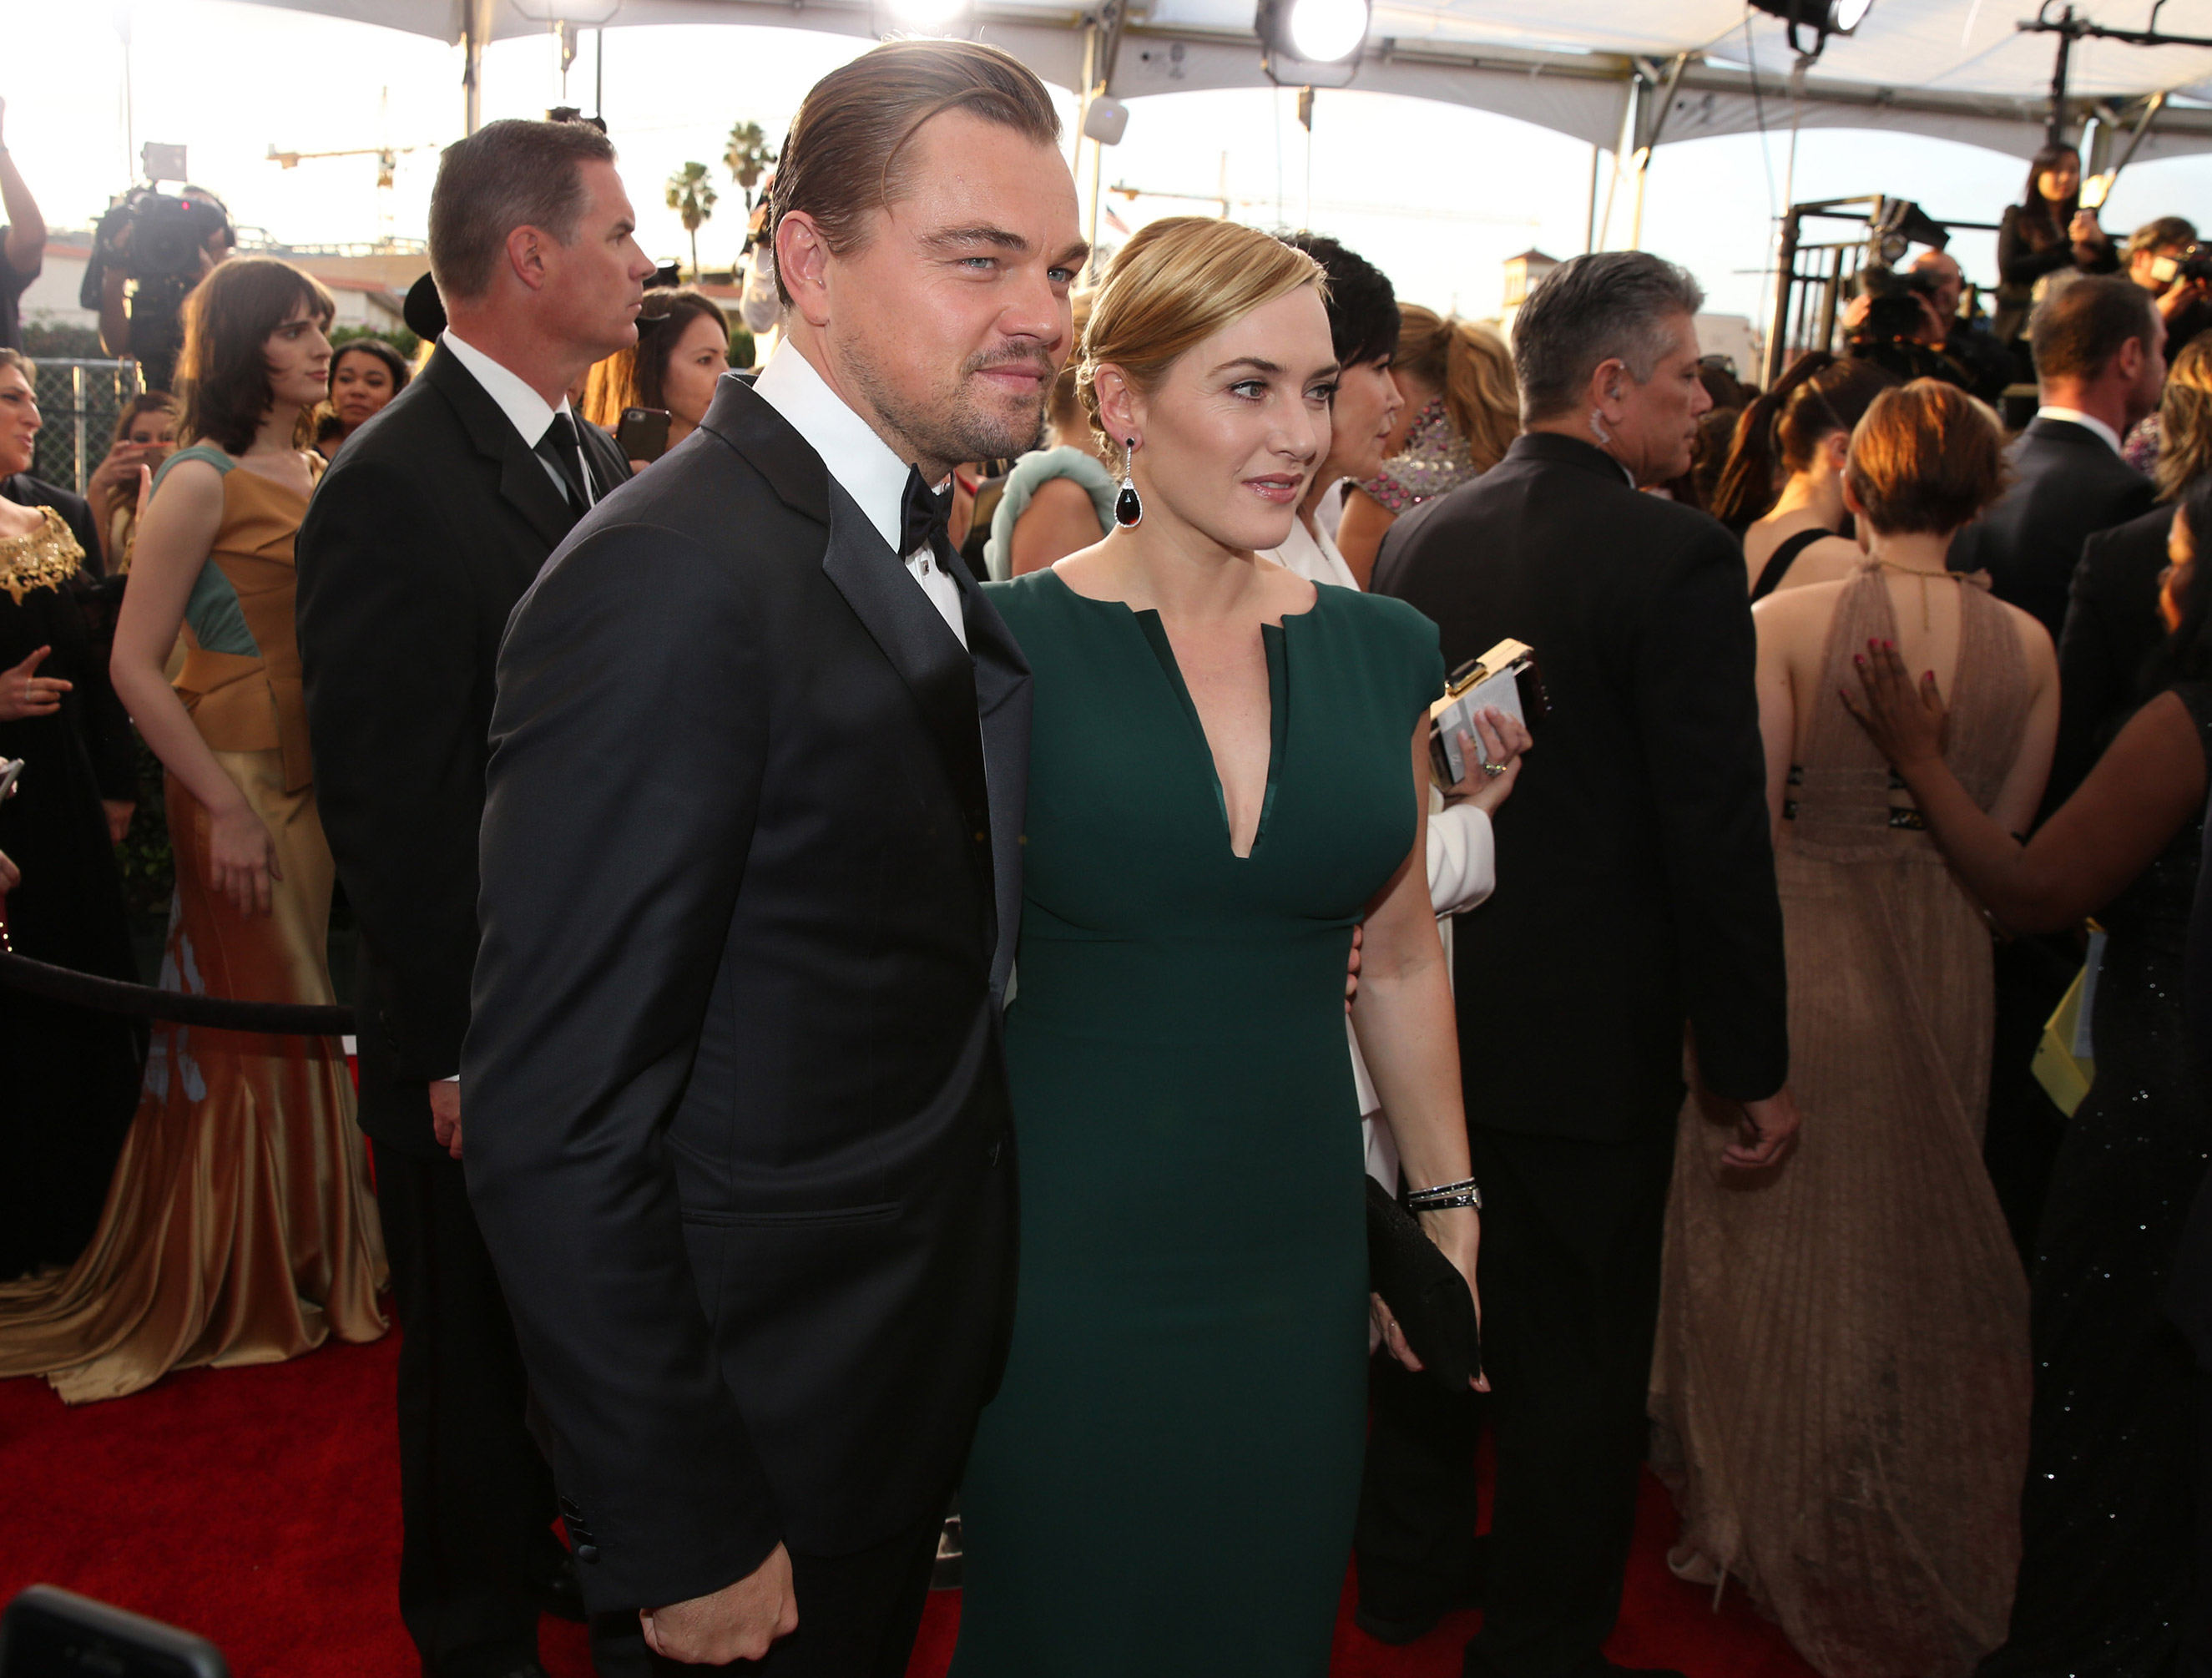 Leonardo DiCaprio and Kate Winslet arrive at the 22nd annual Screen Actors Guild Awards at the Shrine Auditorium & Expo Hall in Los Angeles, Jan. 30, 2016.